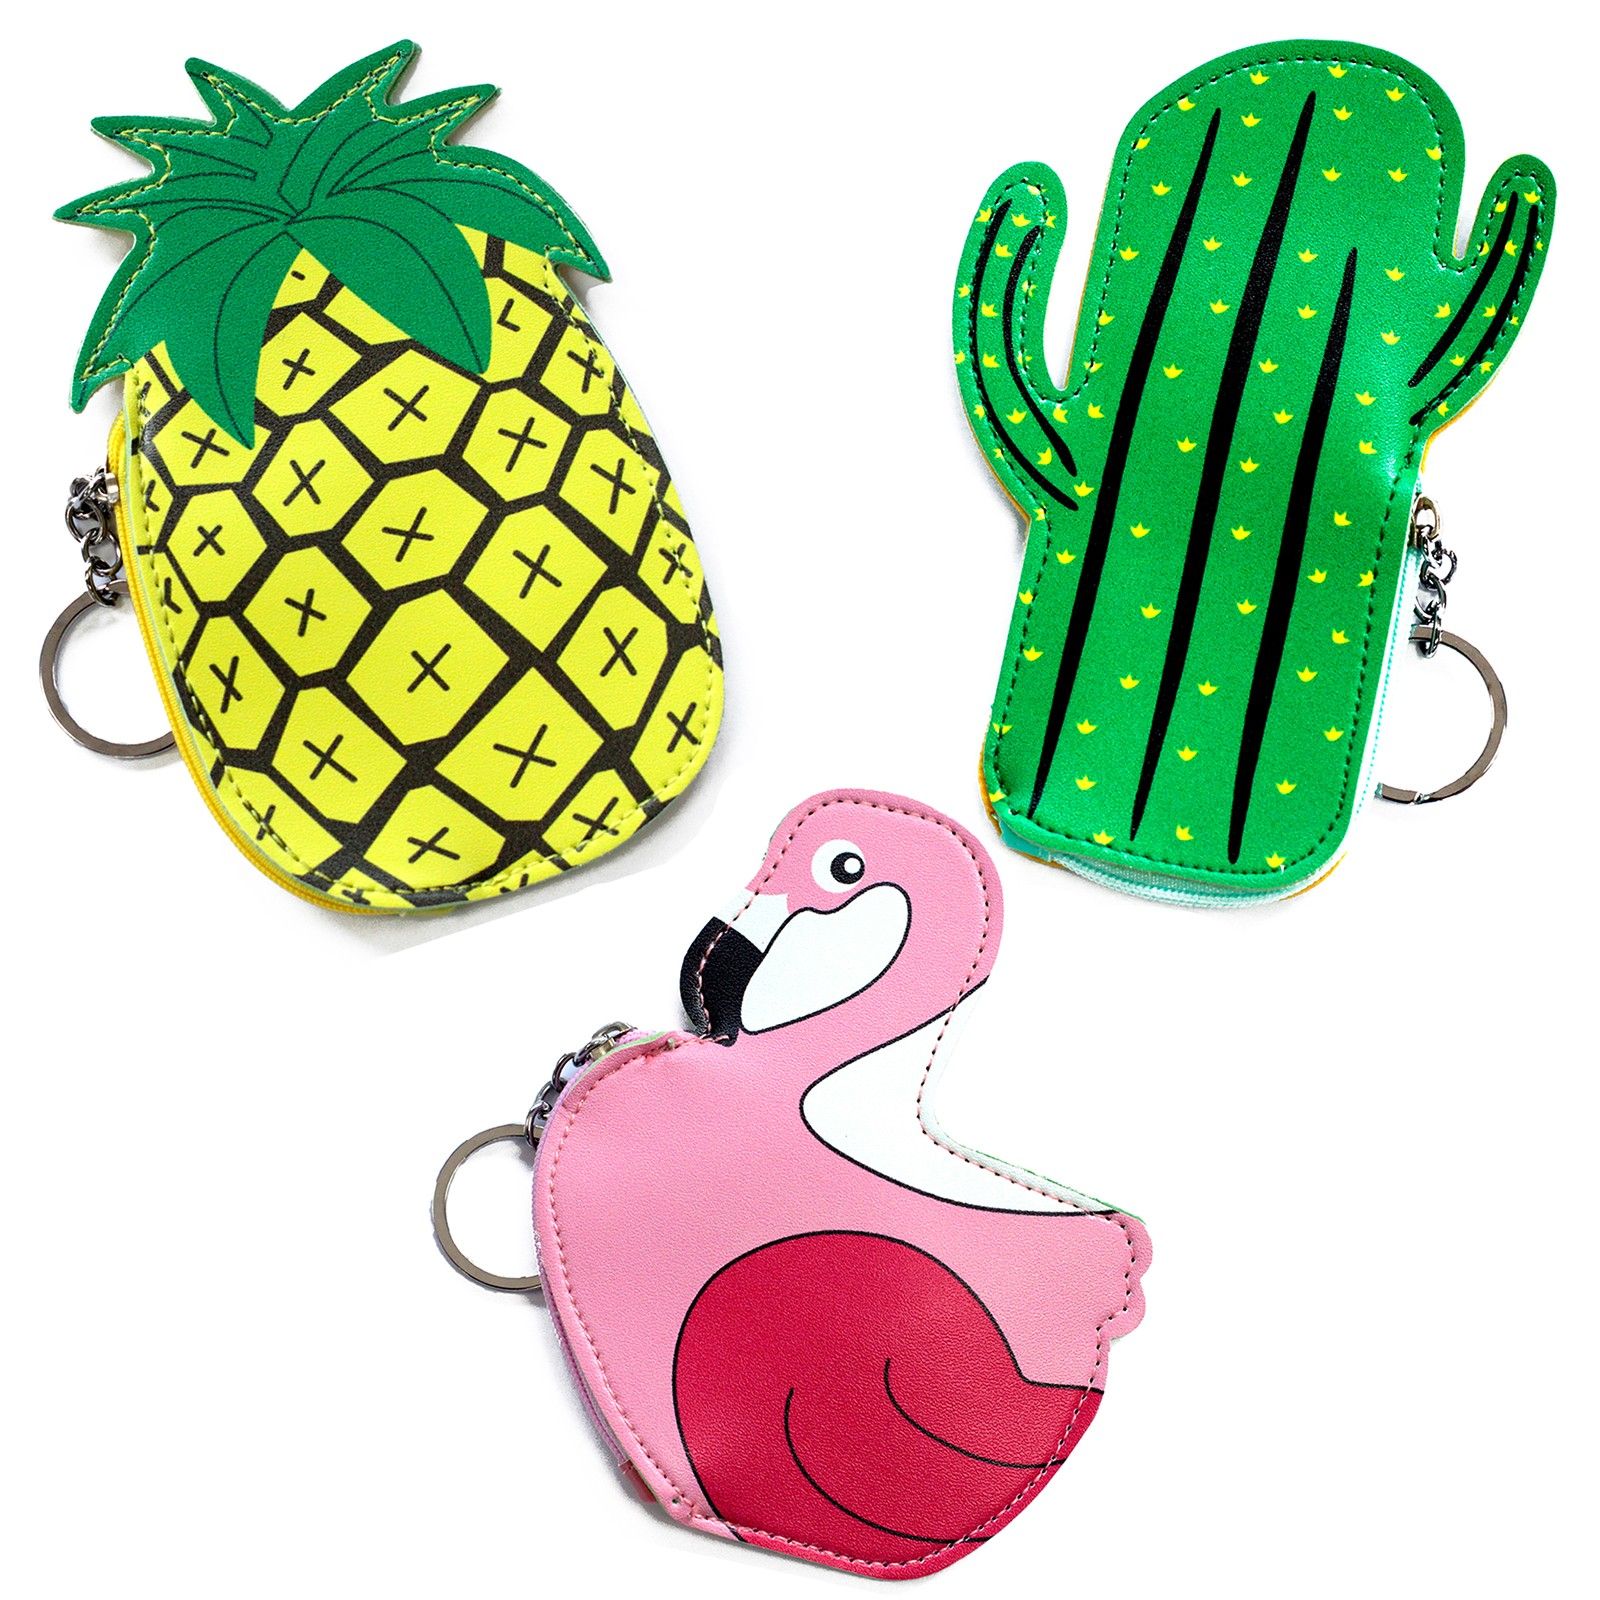 Fun Money Pouch - PACK OF 3 - ONE OF EACH DESIGN - Tropical Dreams